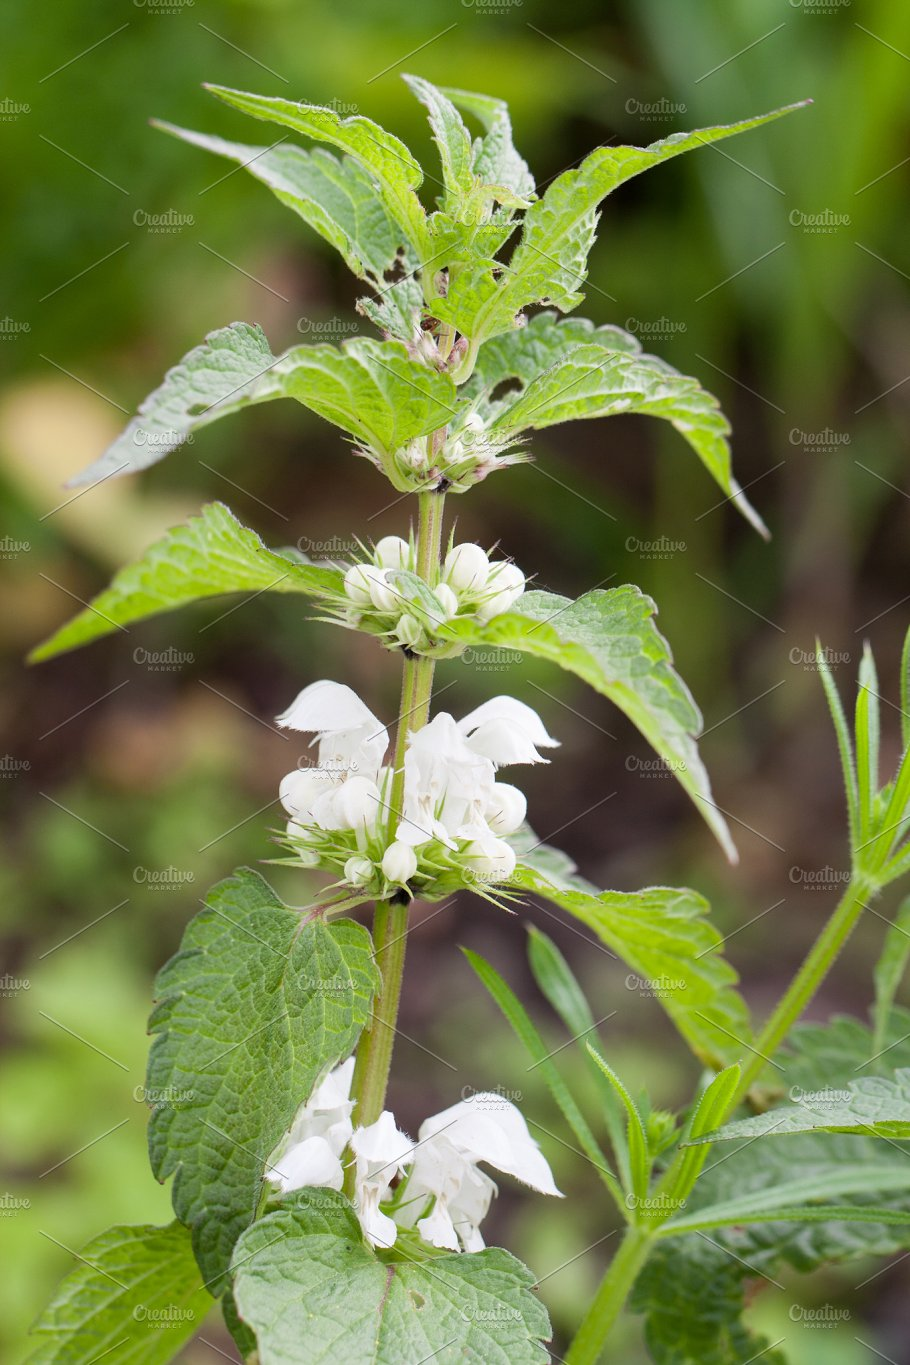 Blooming nettle bush with white flowers nature photos creative blooming nettle bush with white flowers nature mightylinksfo